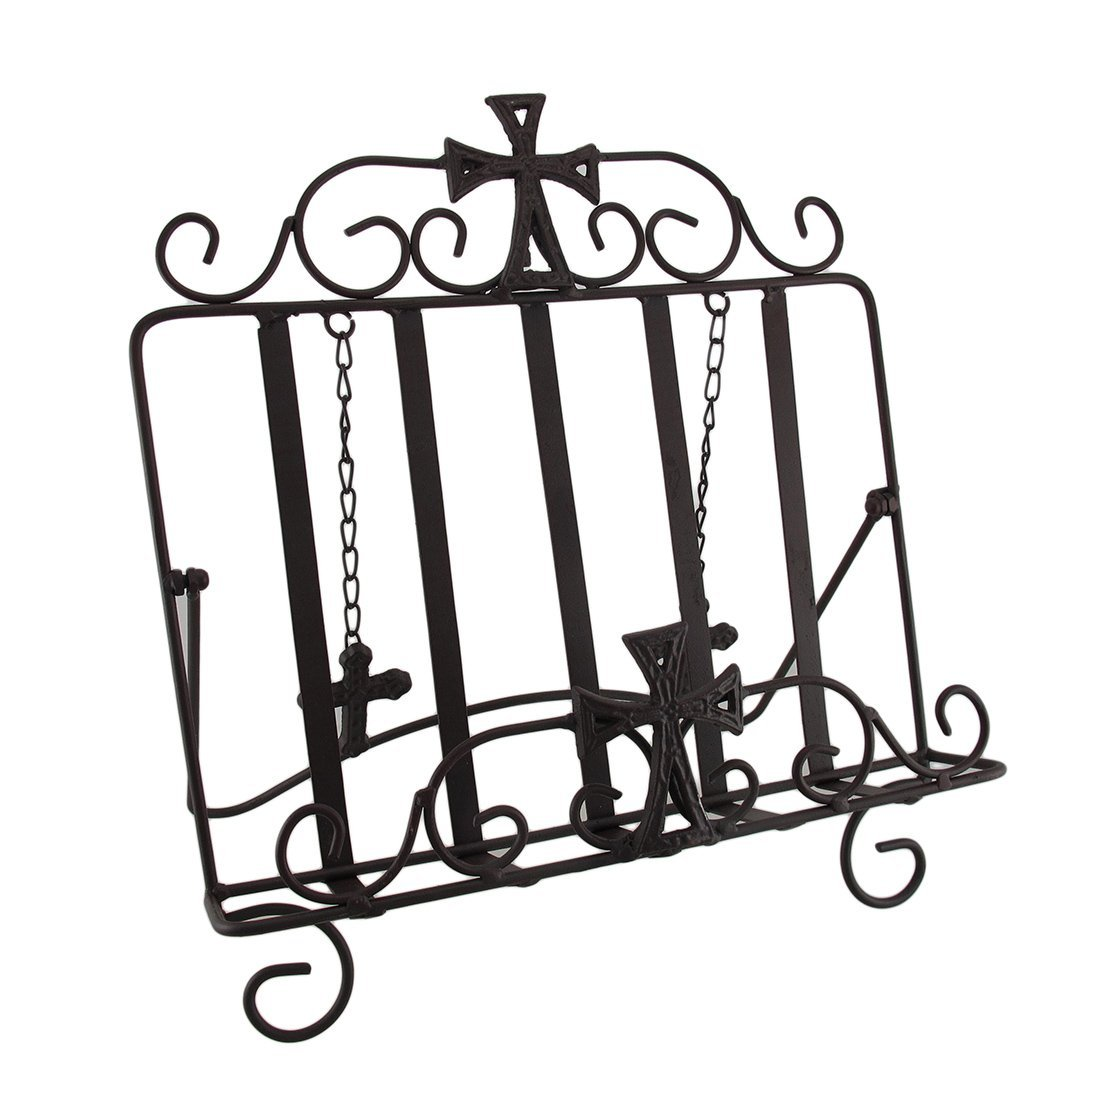 Wrought Iron Gothic Cross Bible Holder Easel Stand, Metal...